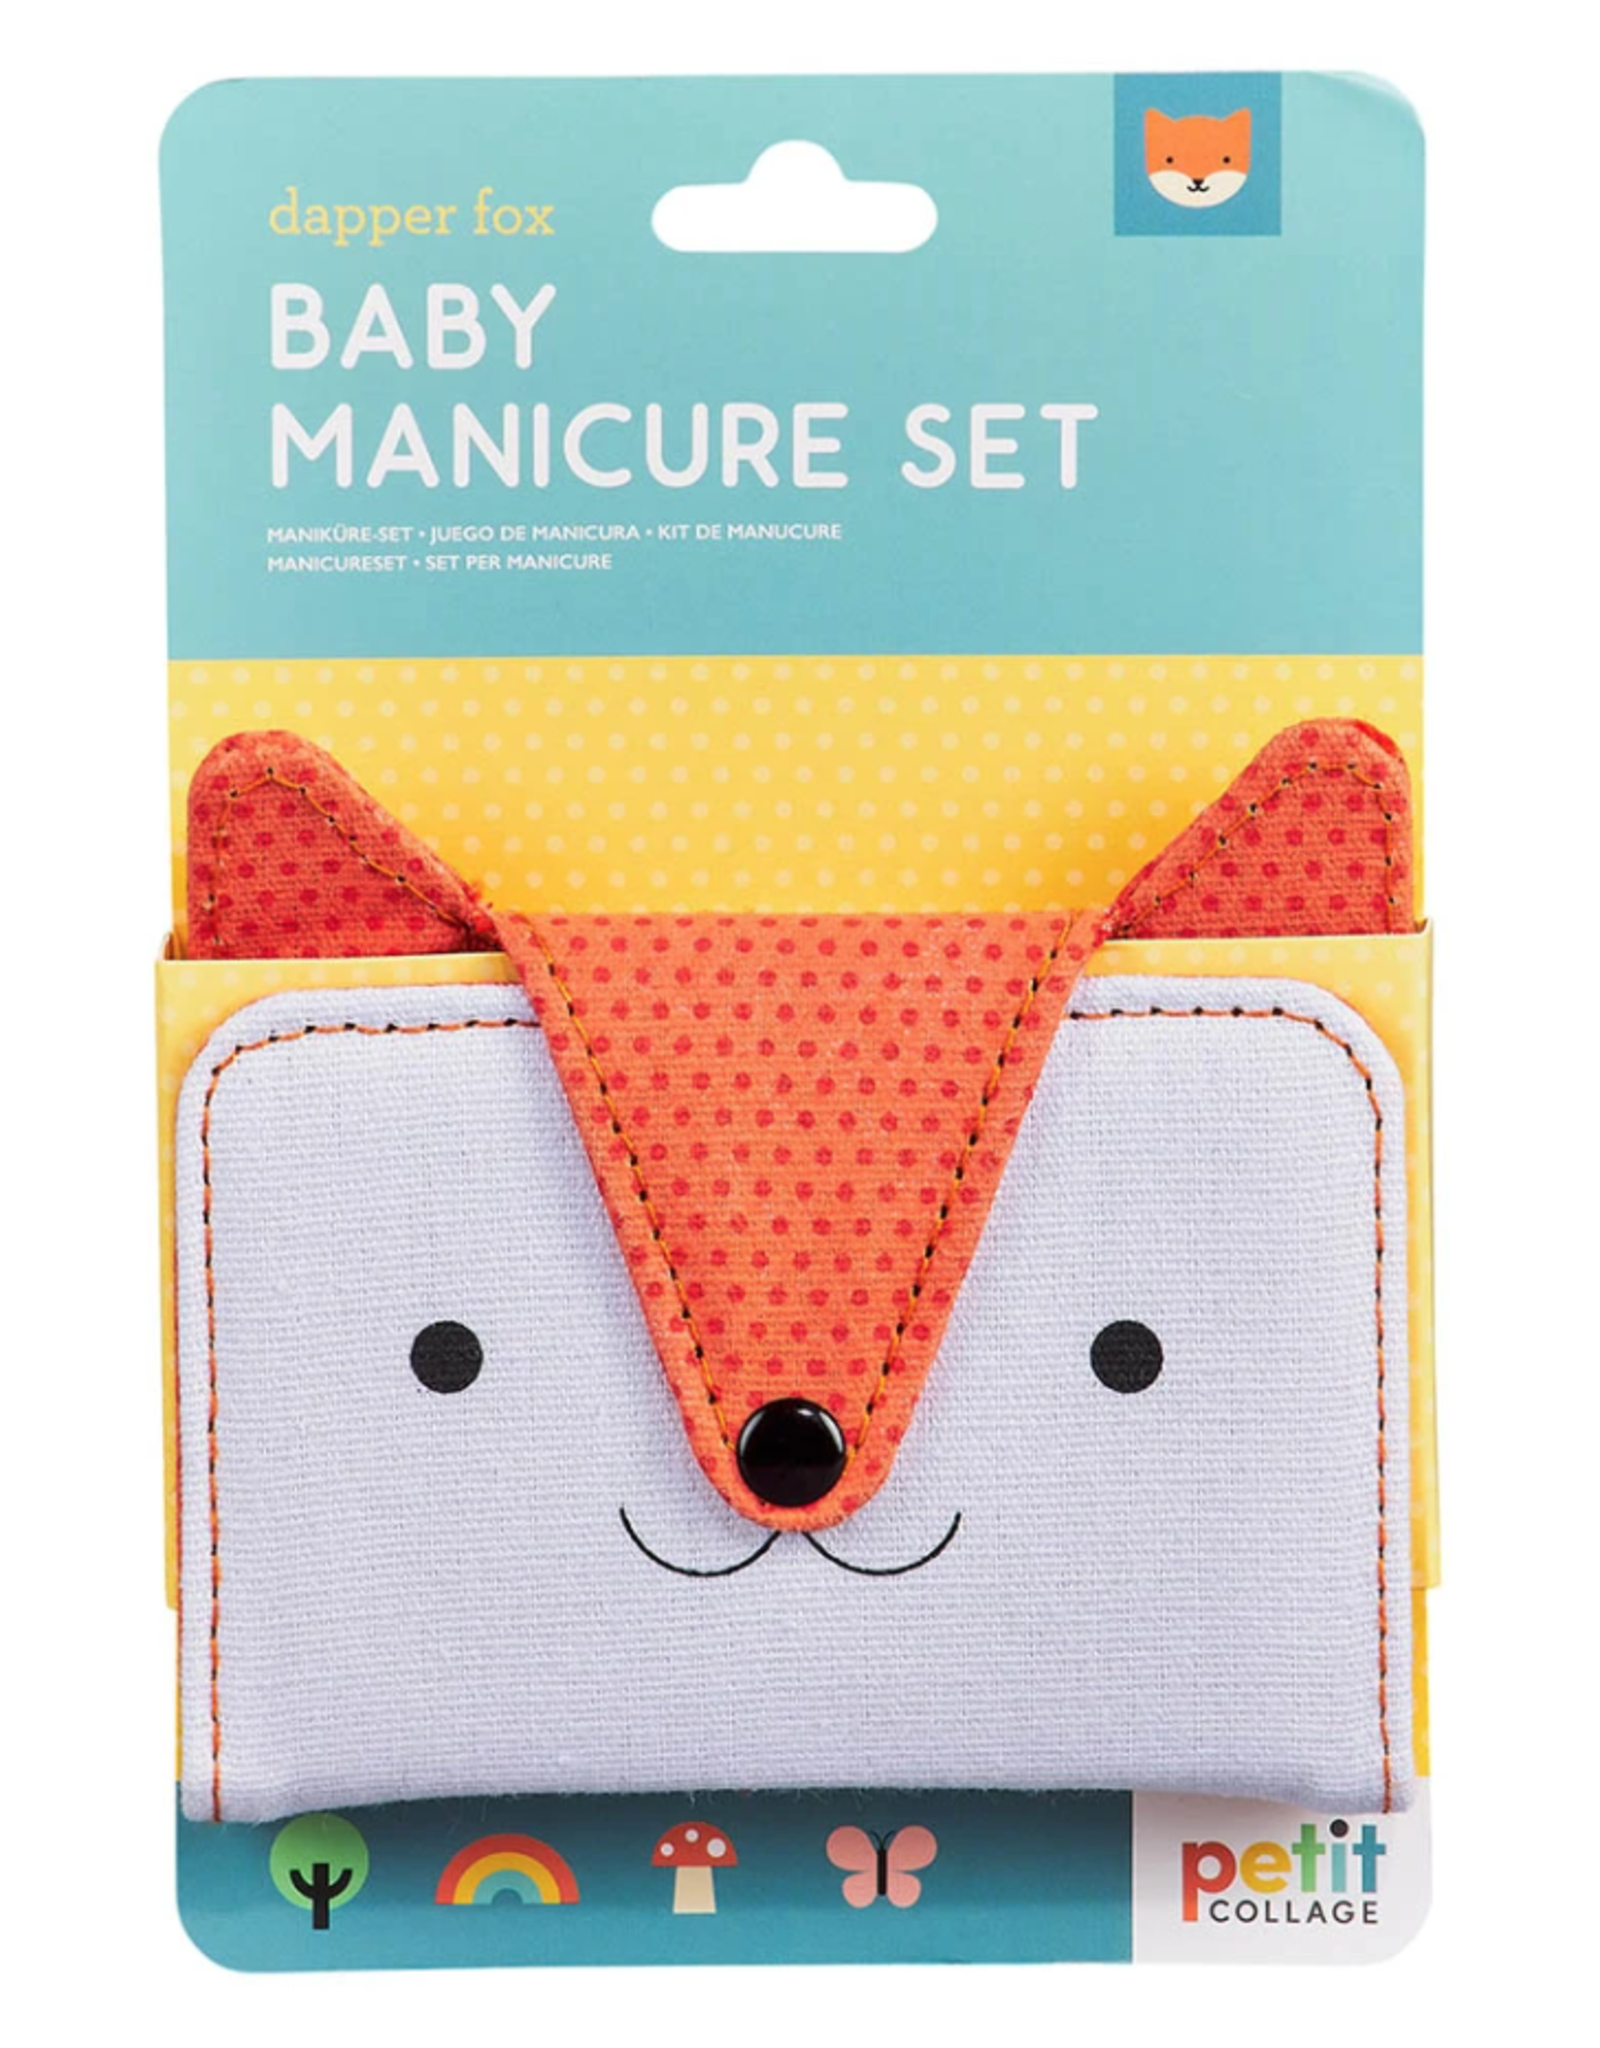 Petit Collage Baby Manicure Set